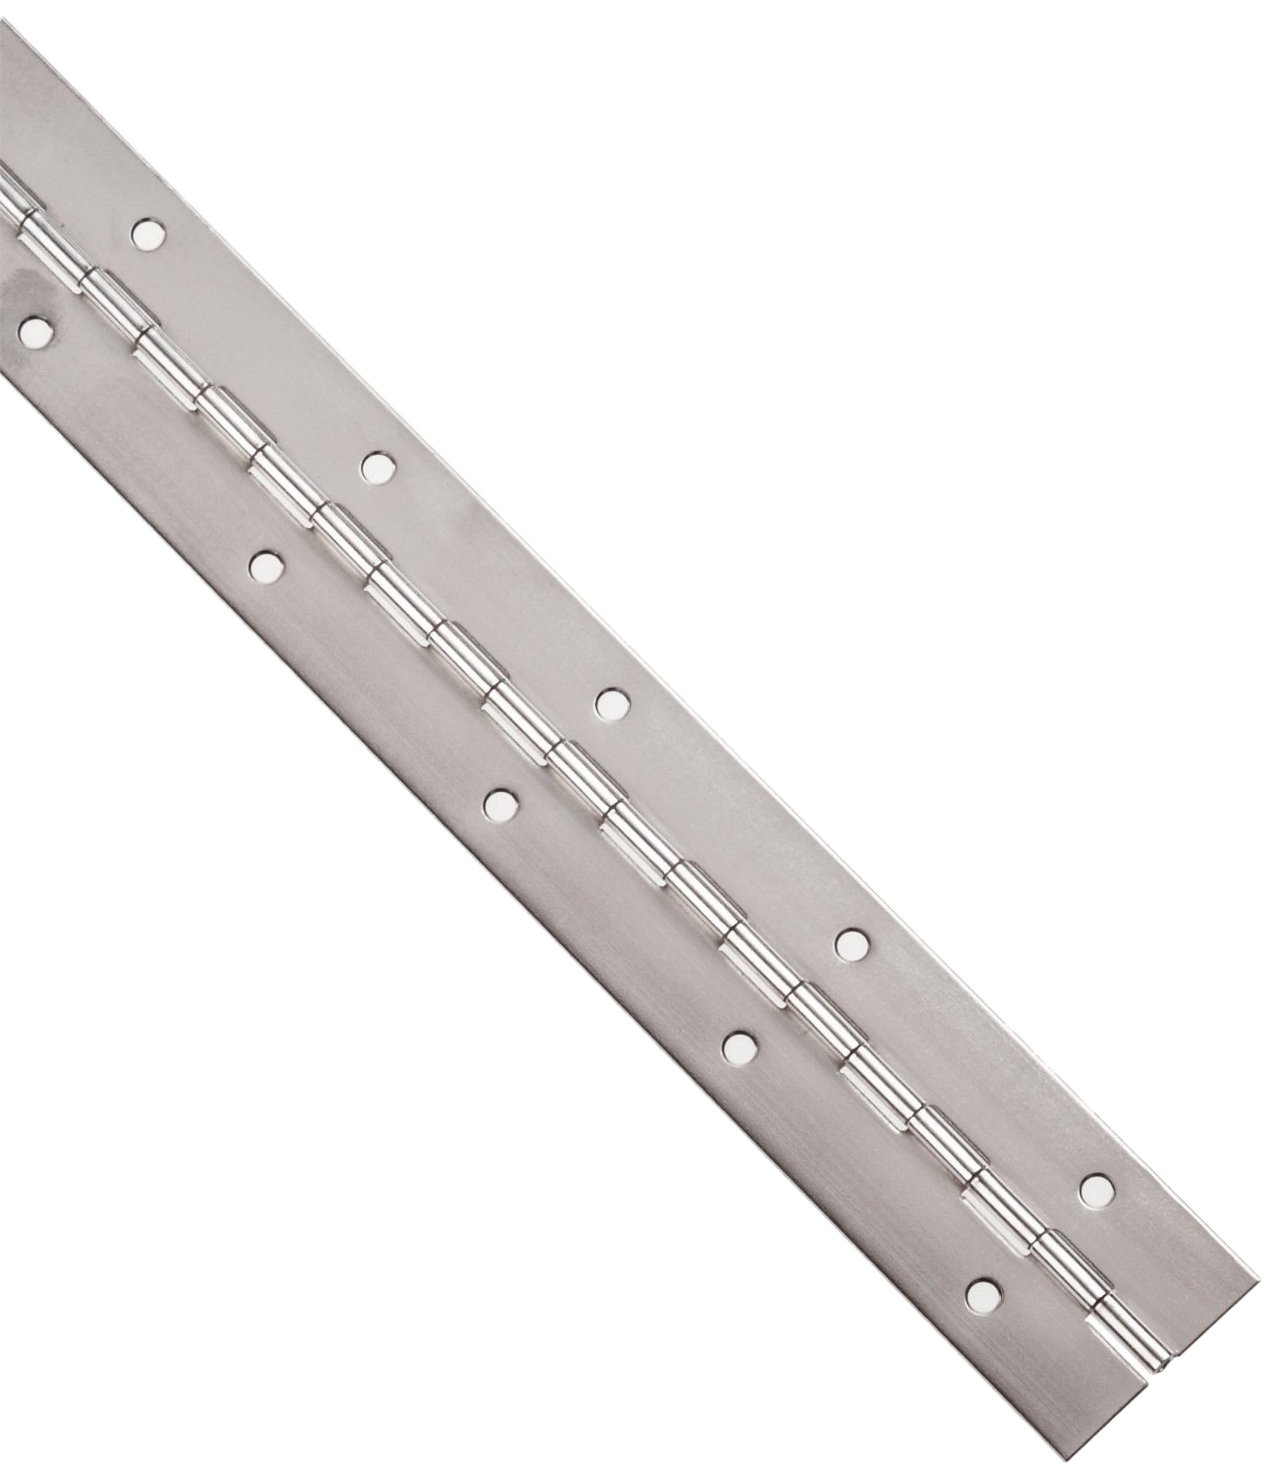 Stainless Steel 304 Continuous Hinge with Holes 1 Long 1-1//16 Open Width Pack of 1 3//32 Pin Diameter 1//2 Knuckle Length 0.042 Leaf Thickness Polished Finish